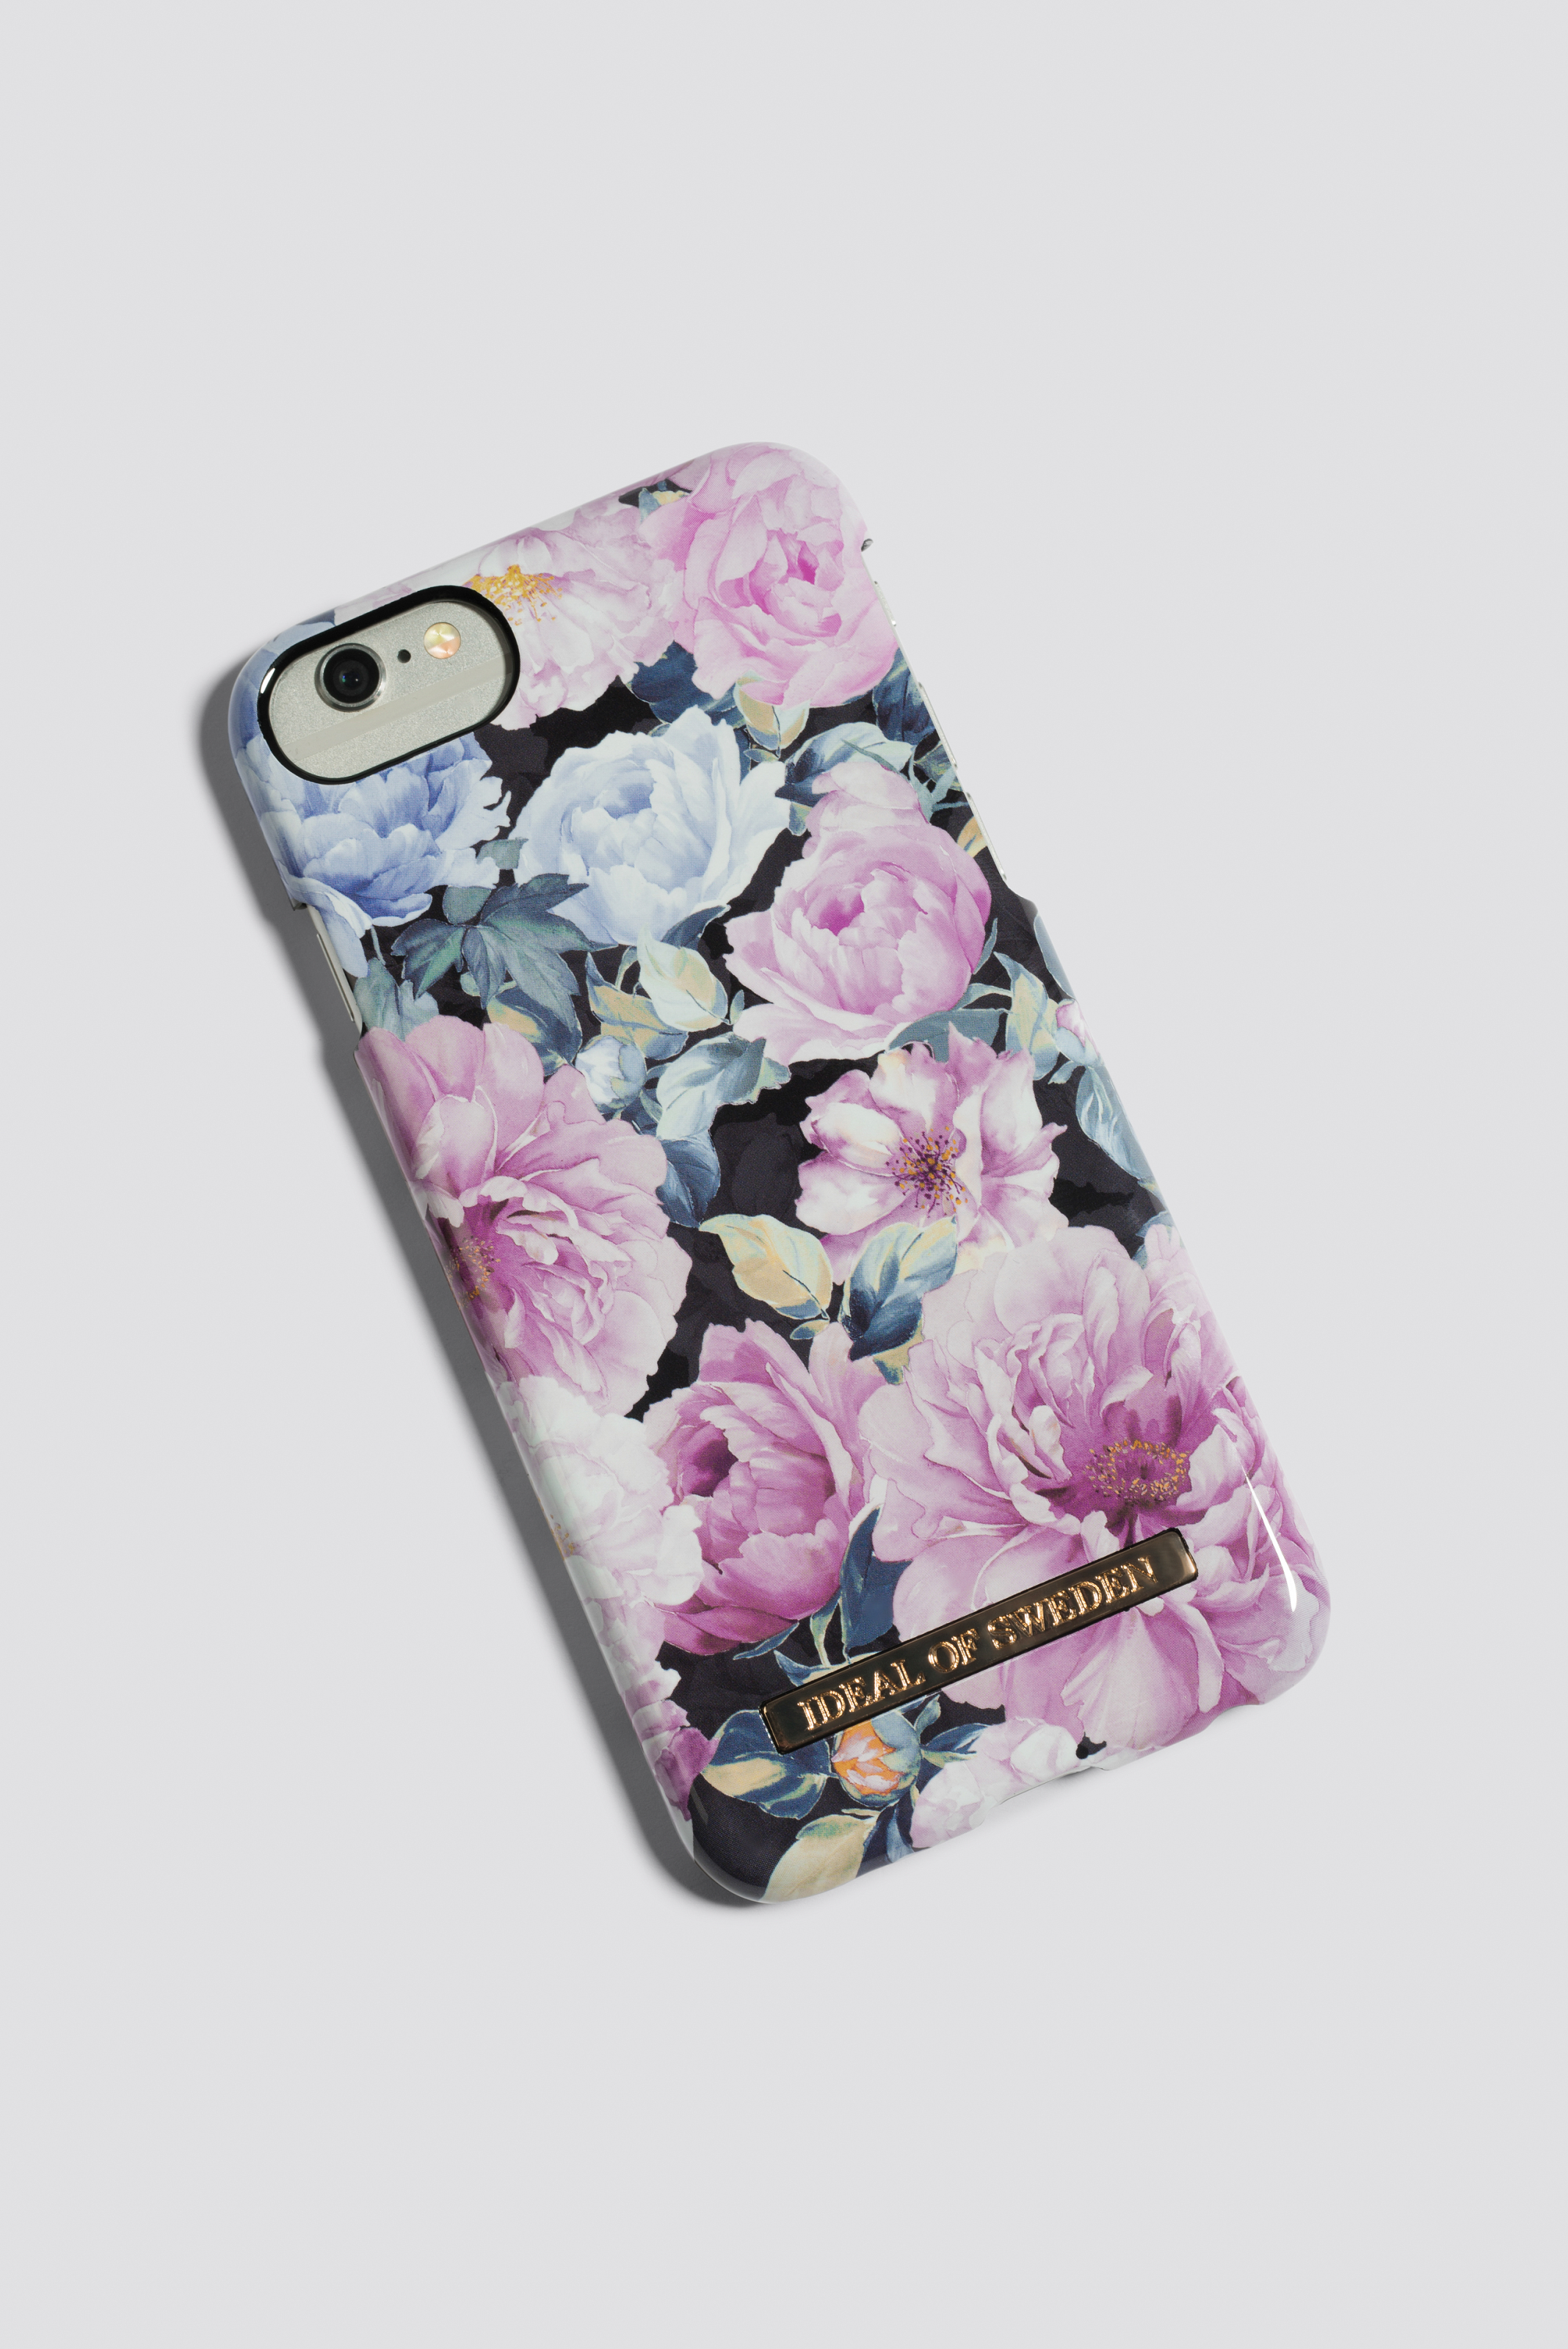 IDEAL OF SWEDEN Peony Garden Iphone 6/7/8 Case - Pink, Multicolor in Pink,Multicolor